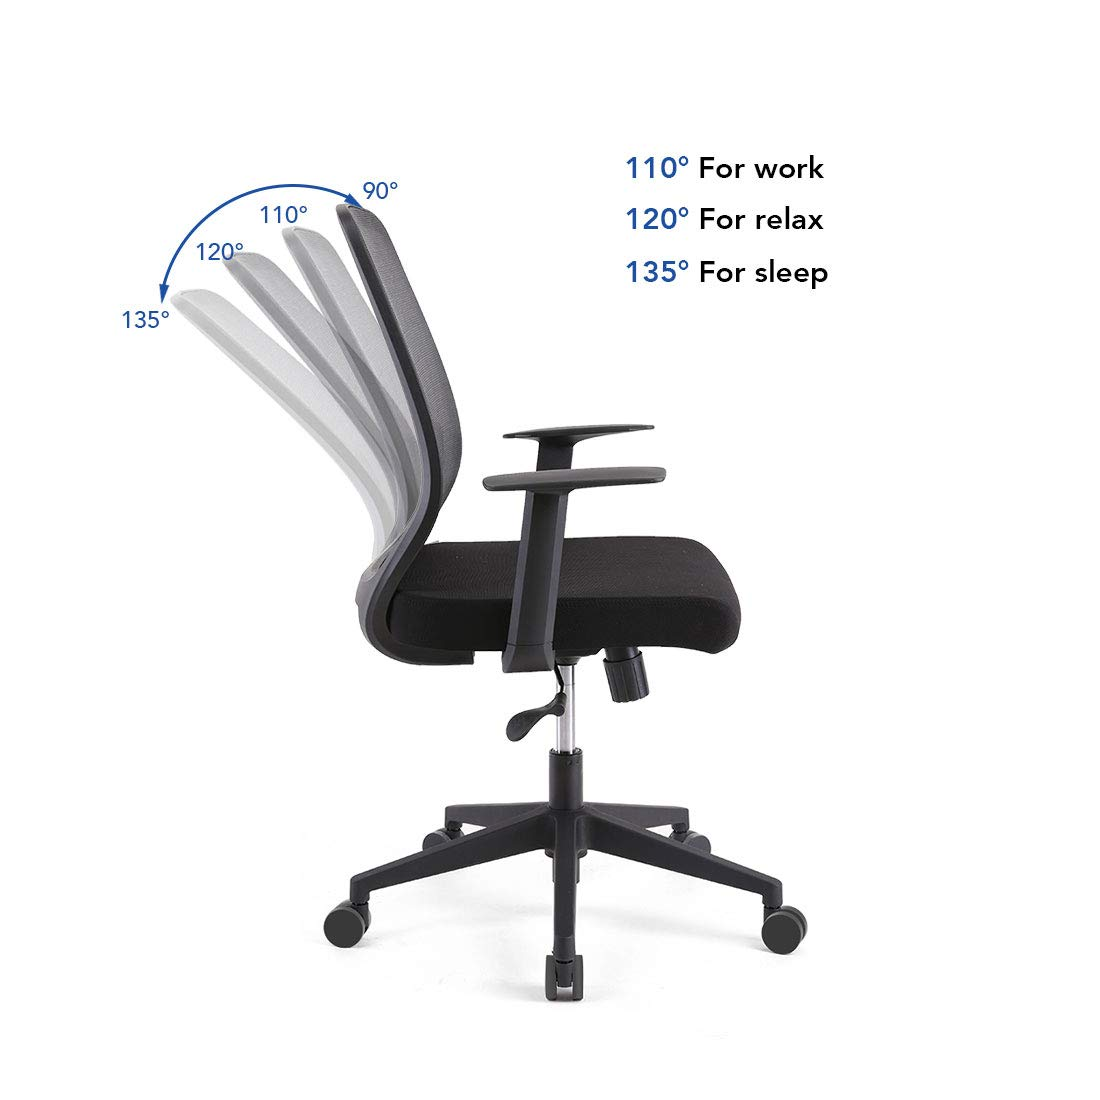 FlexiSpot OC1B Ergonomics Executive Office Chair Swivel Height Adjustable Seat Armrest on Caster Wheels, Black